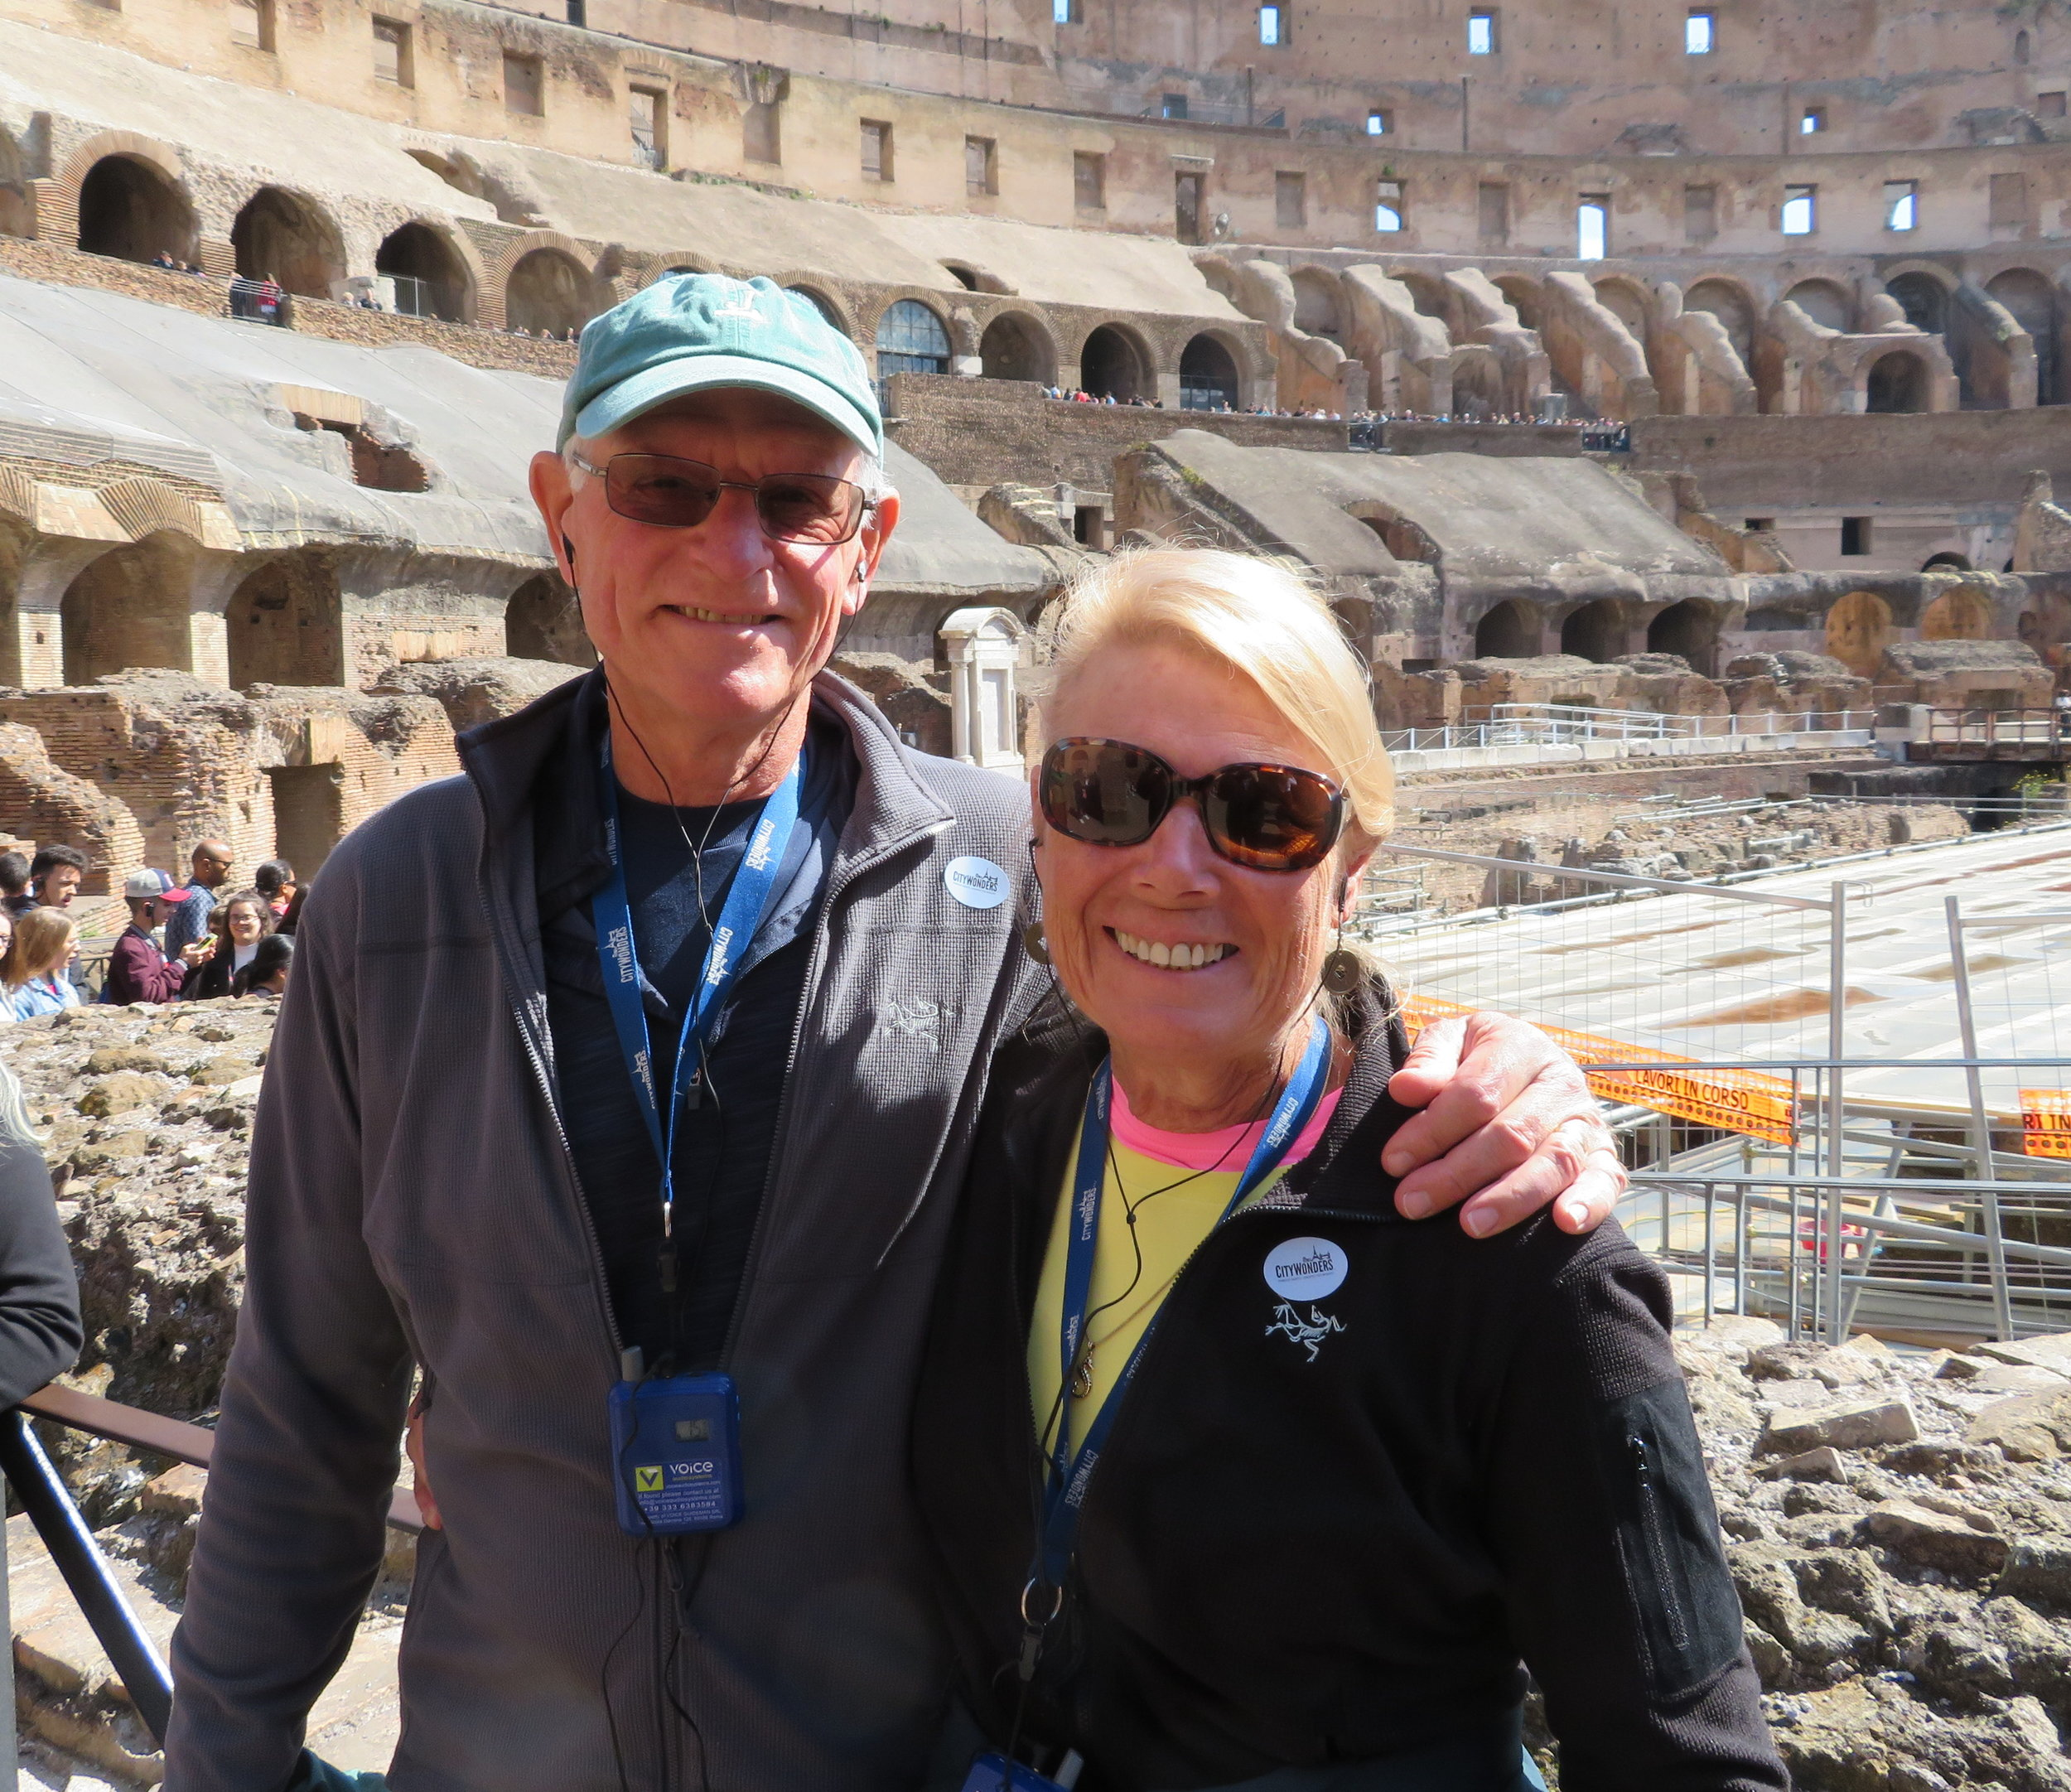 Yup, we were here, but we are NOT the aforementioned archaeological ruins.